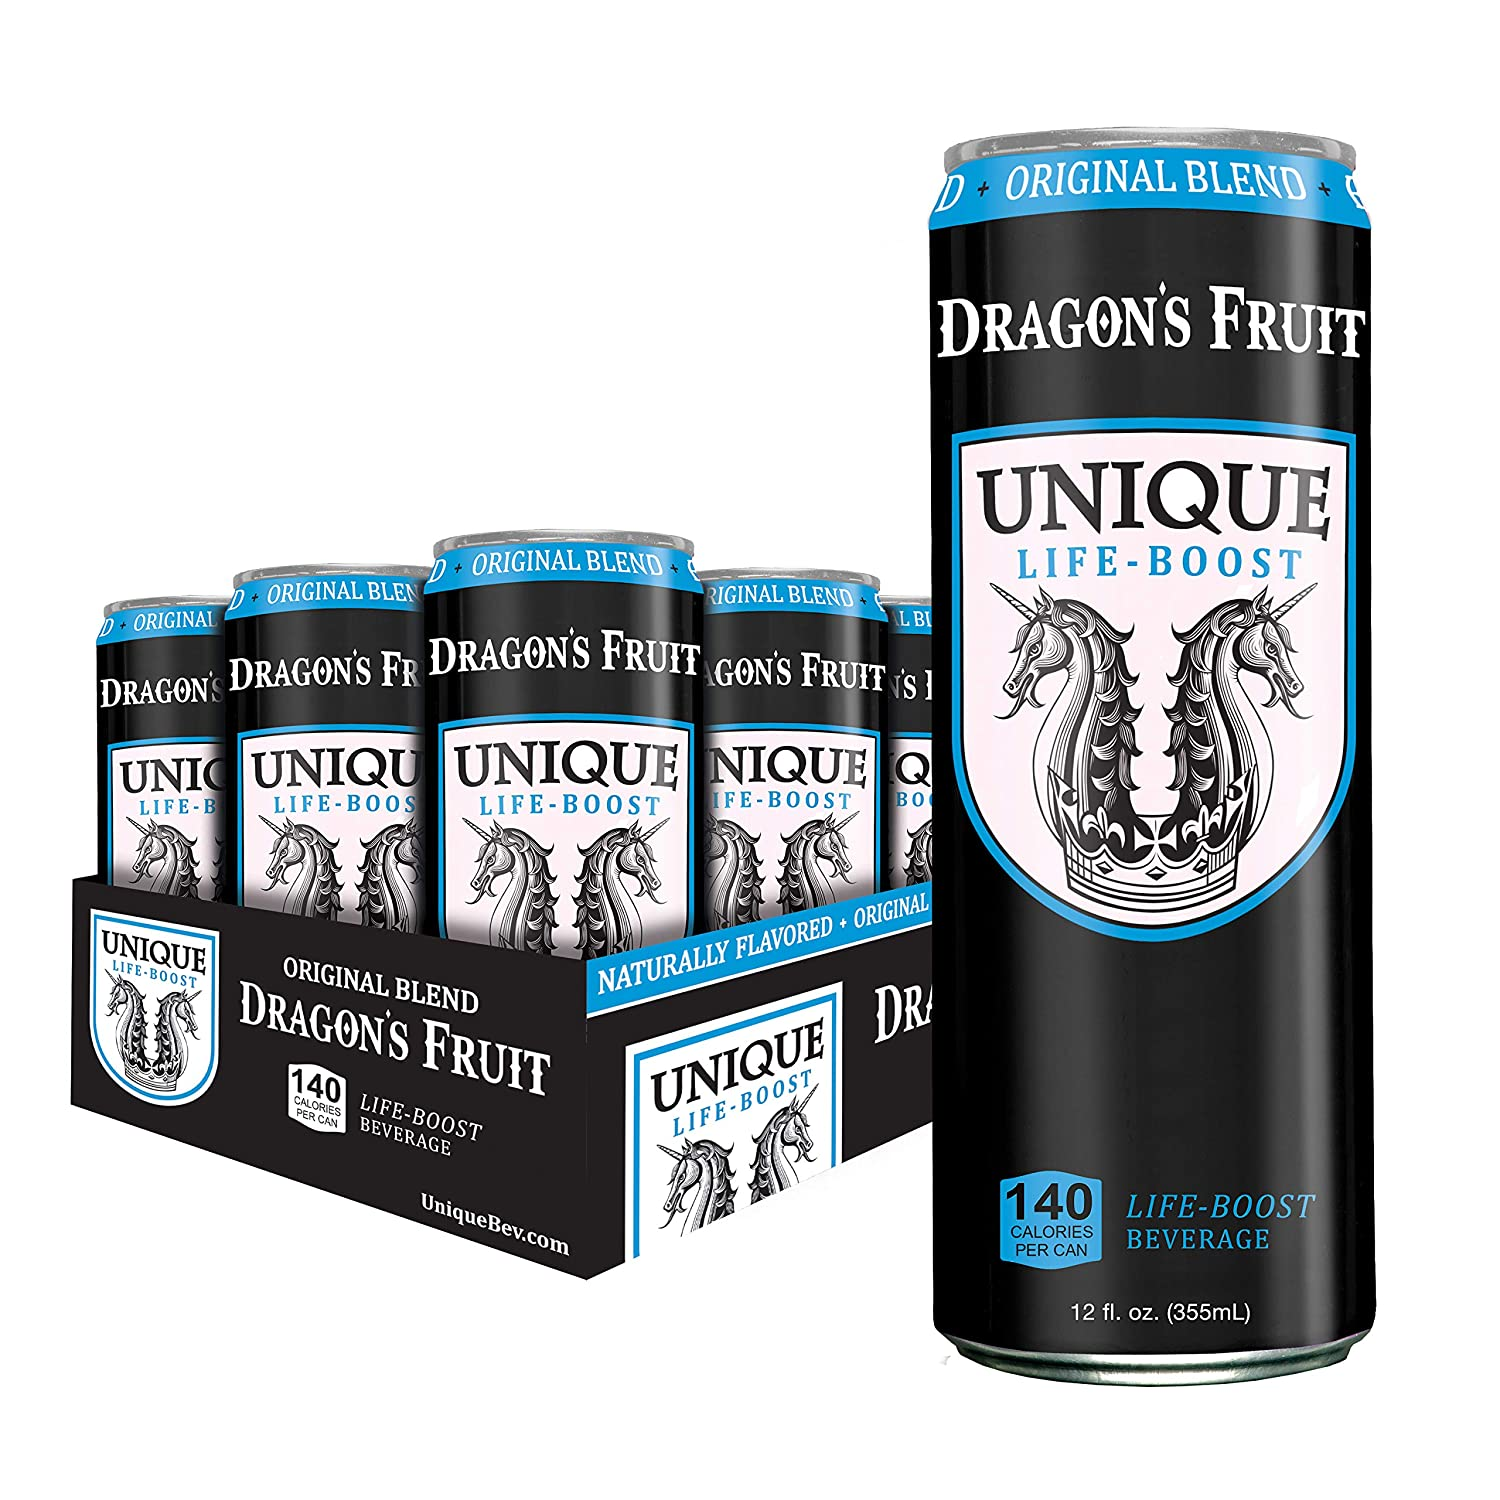 Unique Life Boost Functional Beverage | Natural Green Tea Reishi Mushroom Extract Pure Cane Sugar | Dragon's Fruit, 12oz Cans 12 Pack